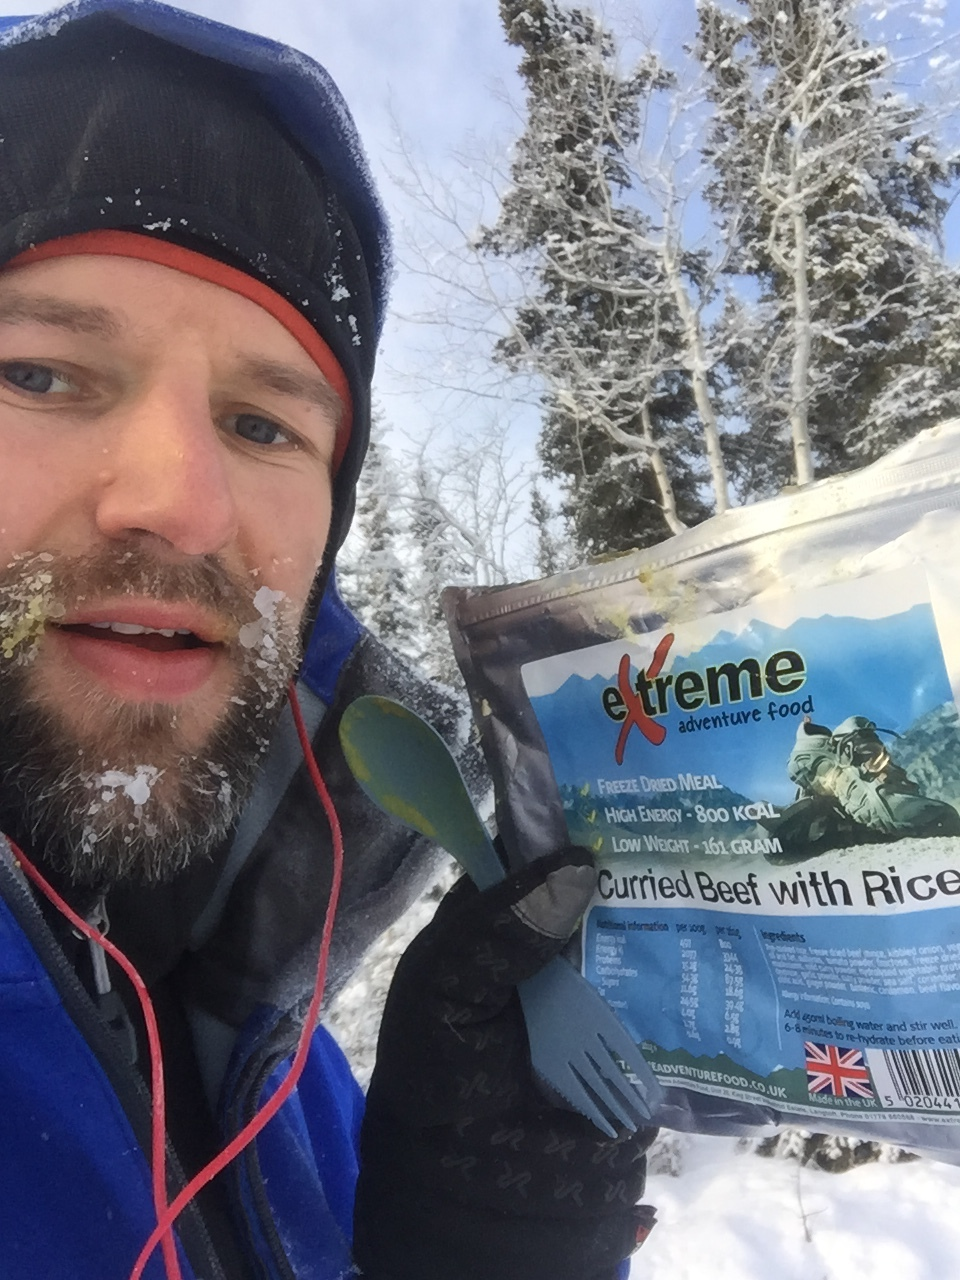 Extreme Adventure Food that i've used during the Yukon Arctic Ultra 300 mile race.